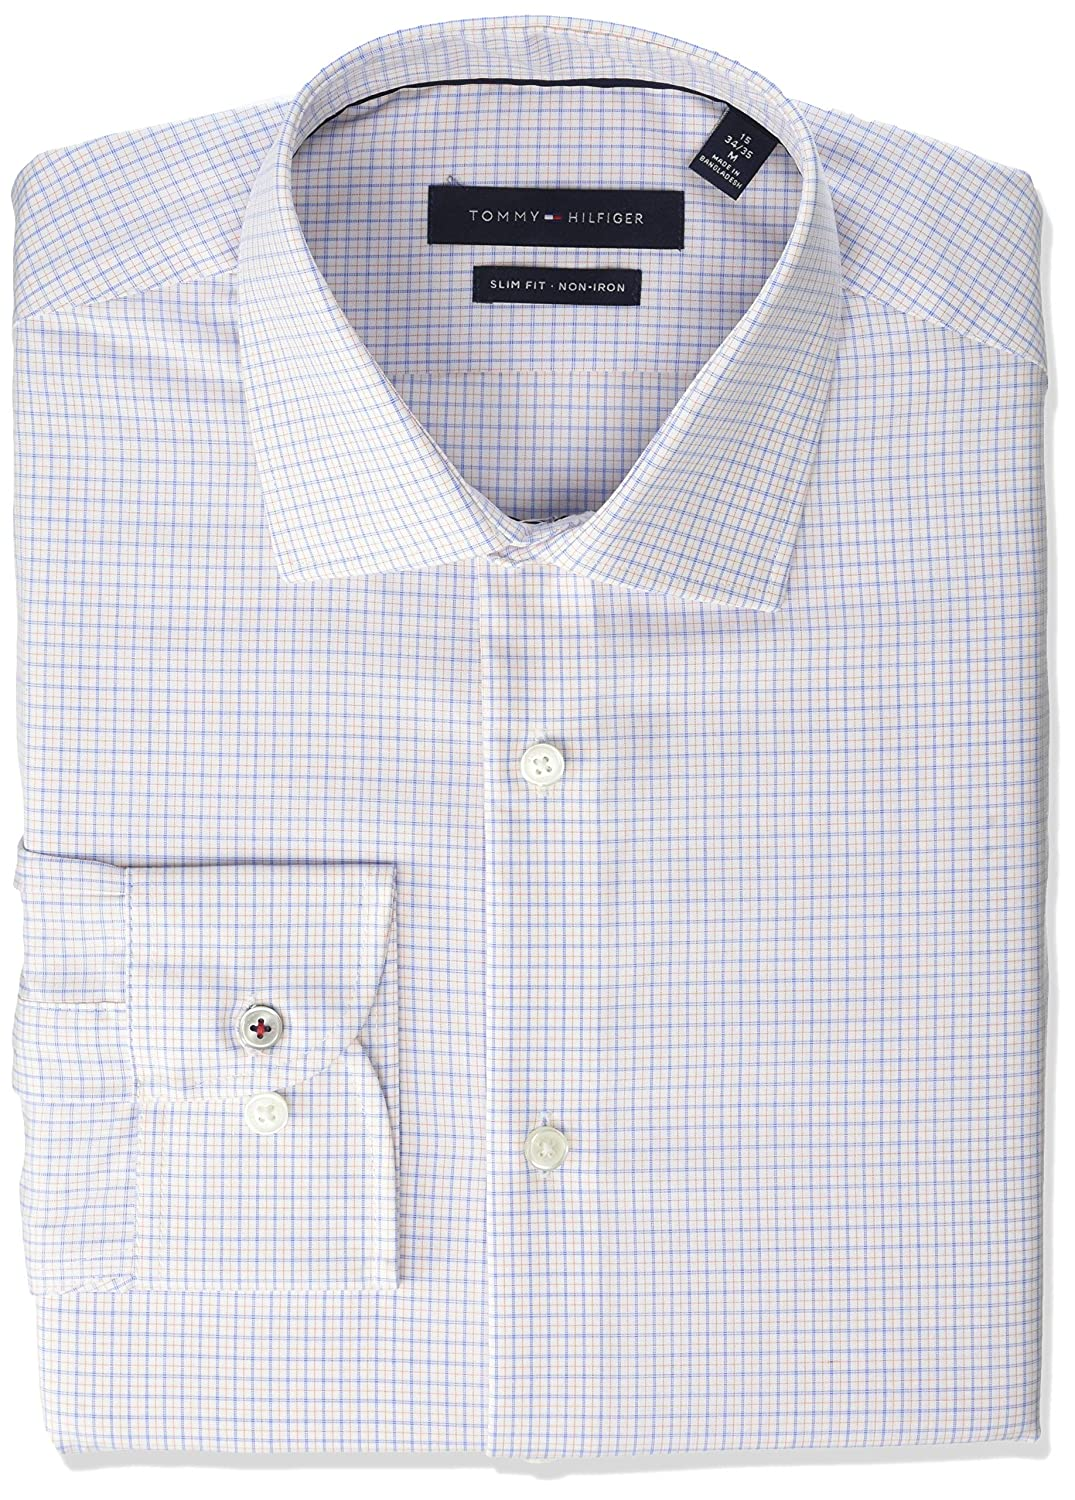 4f987764896 Tommy Hilfiger Men's Dress Shirts Non Iron Slim Fit Check at Amazon Men's  Clothing store: